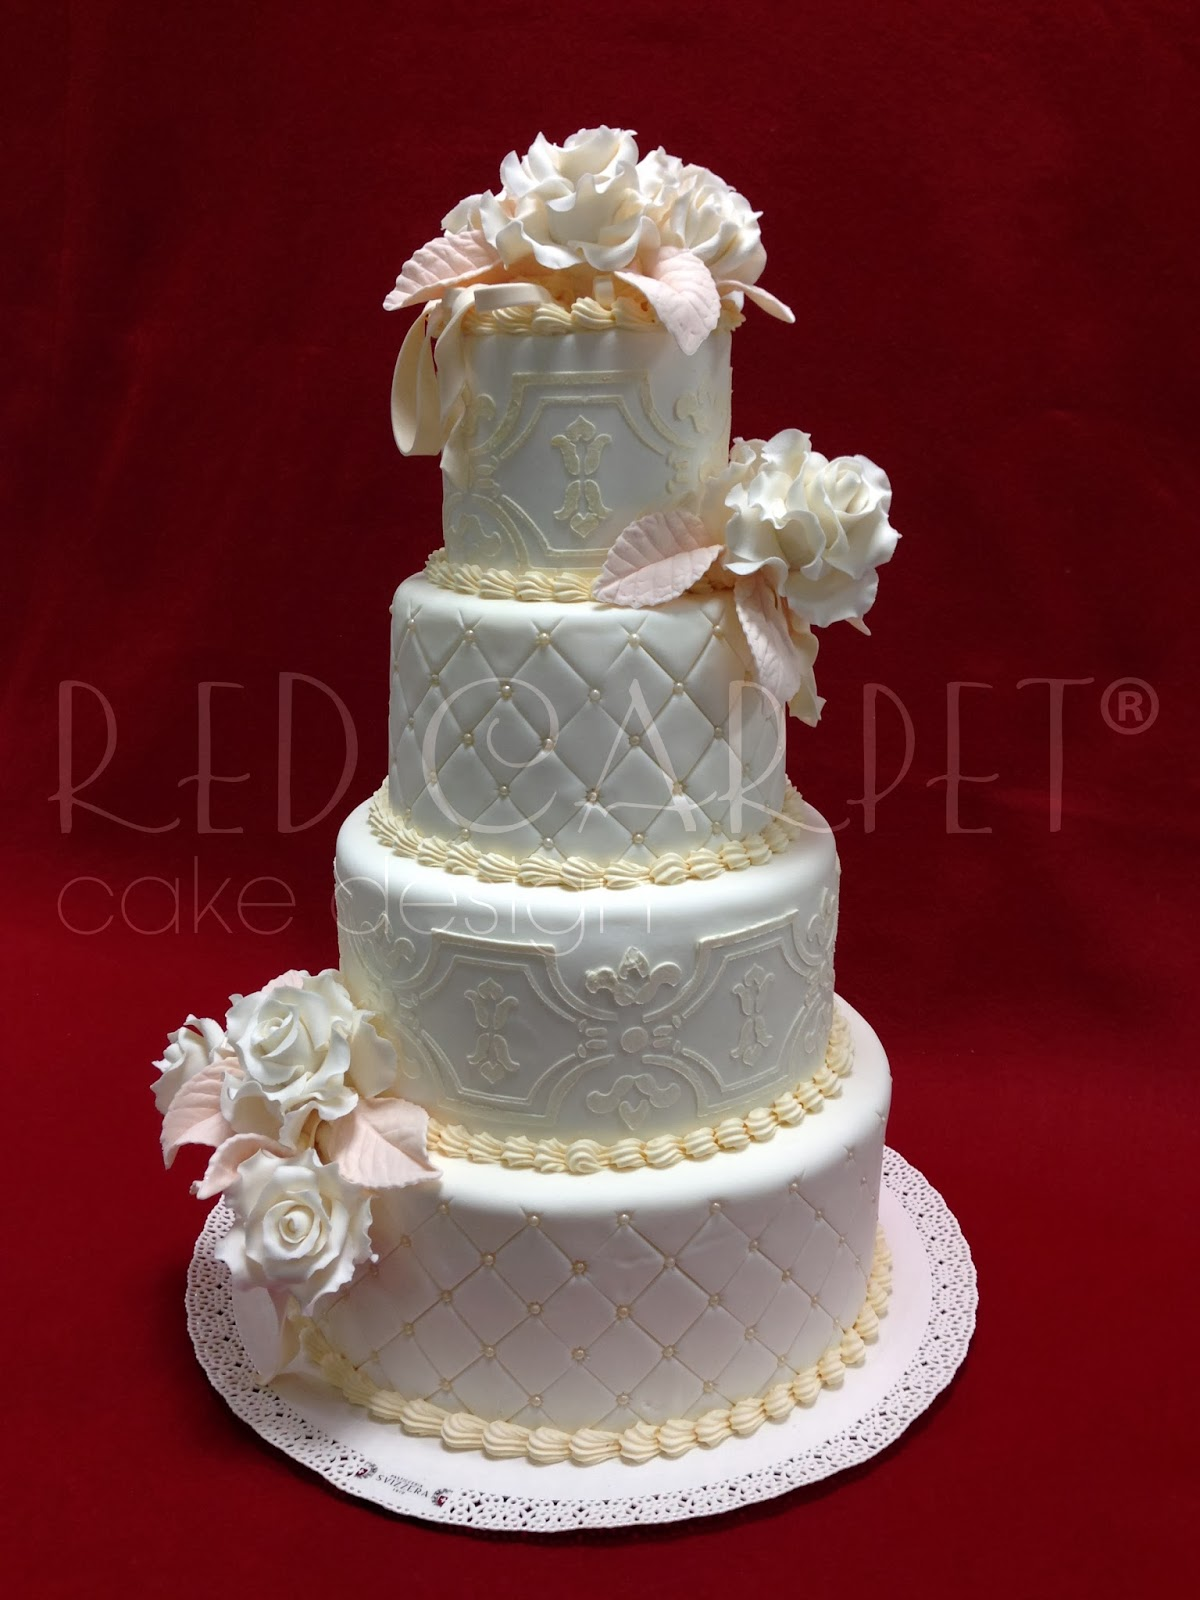 SHABBY CHIC WEDDING CAKE by RED CARPET CAKE DESIGN® | Red Carpet ...